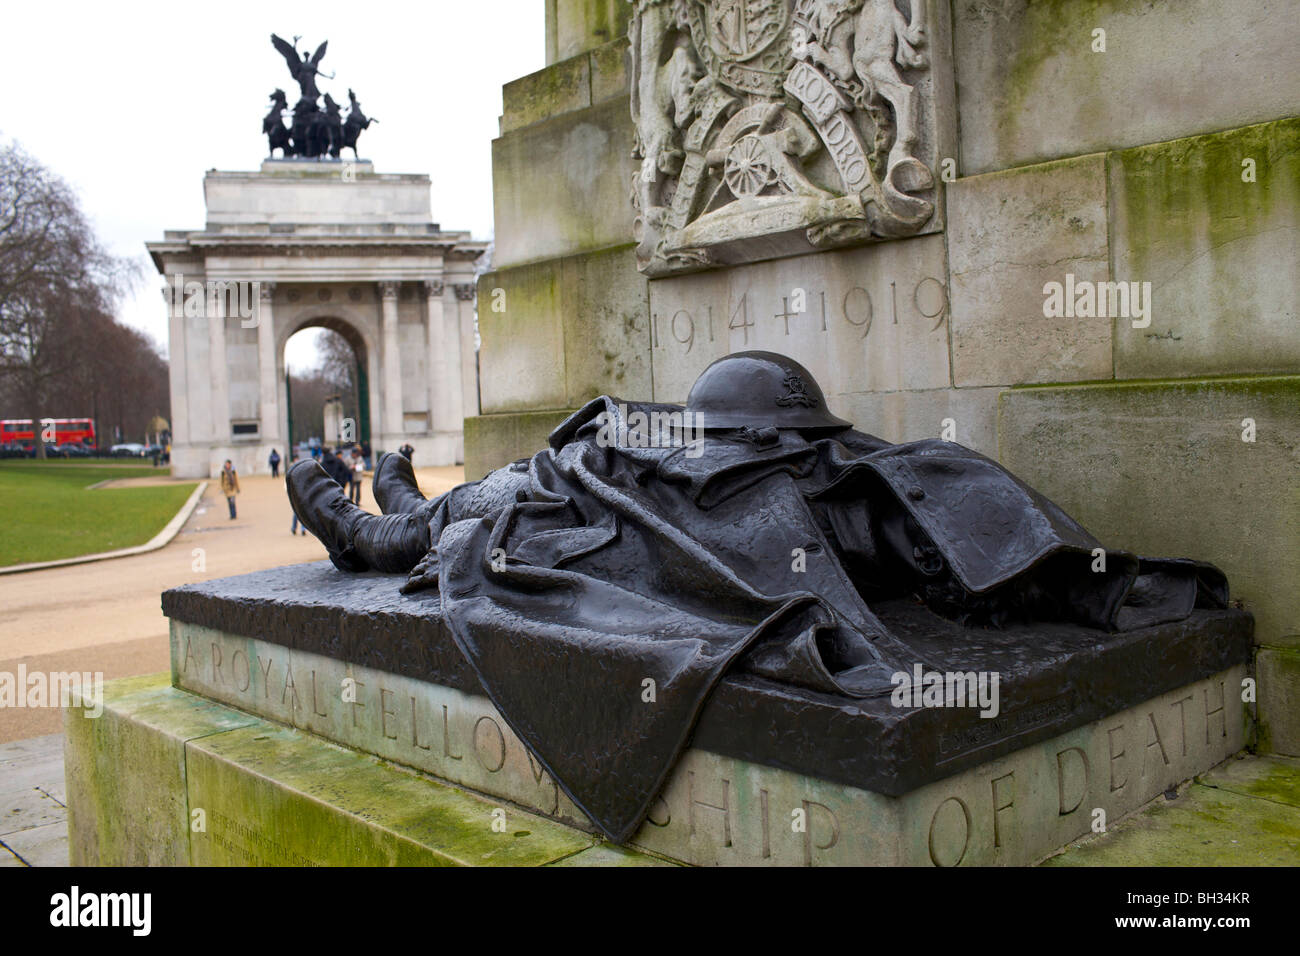 Detail from the Royal Artillery Memorial at Hyde Park Corner London designed by Charles Sargeant Jagger in 1925 - Stock Image